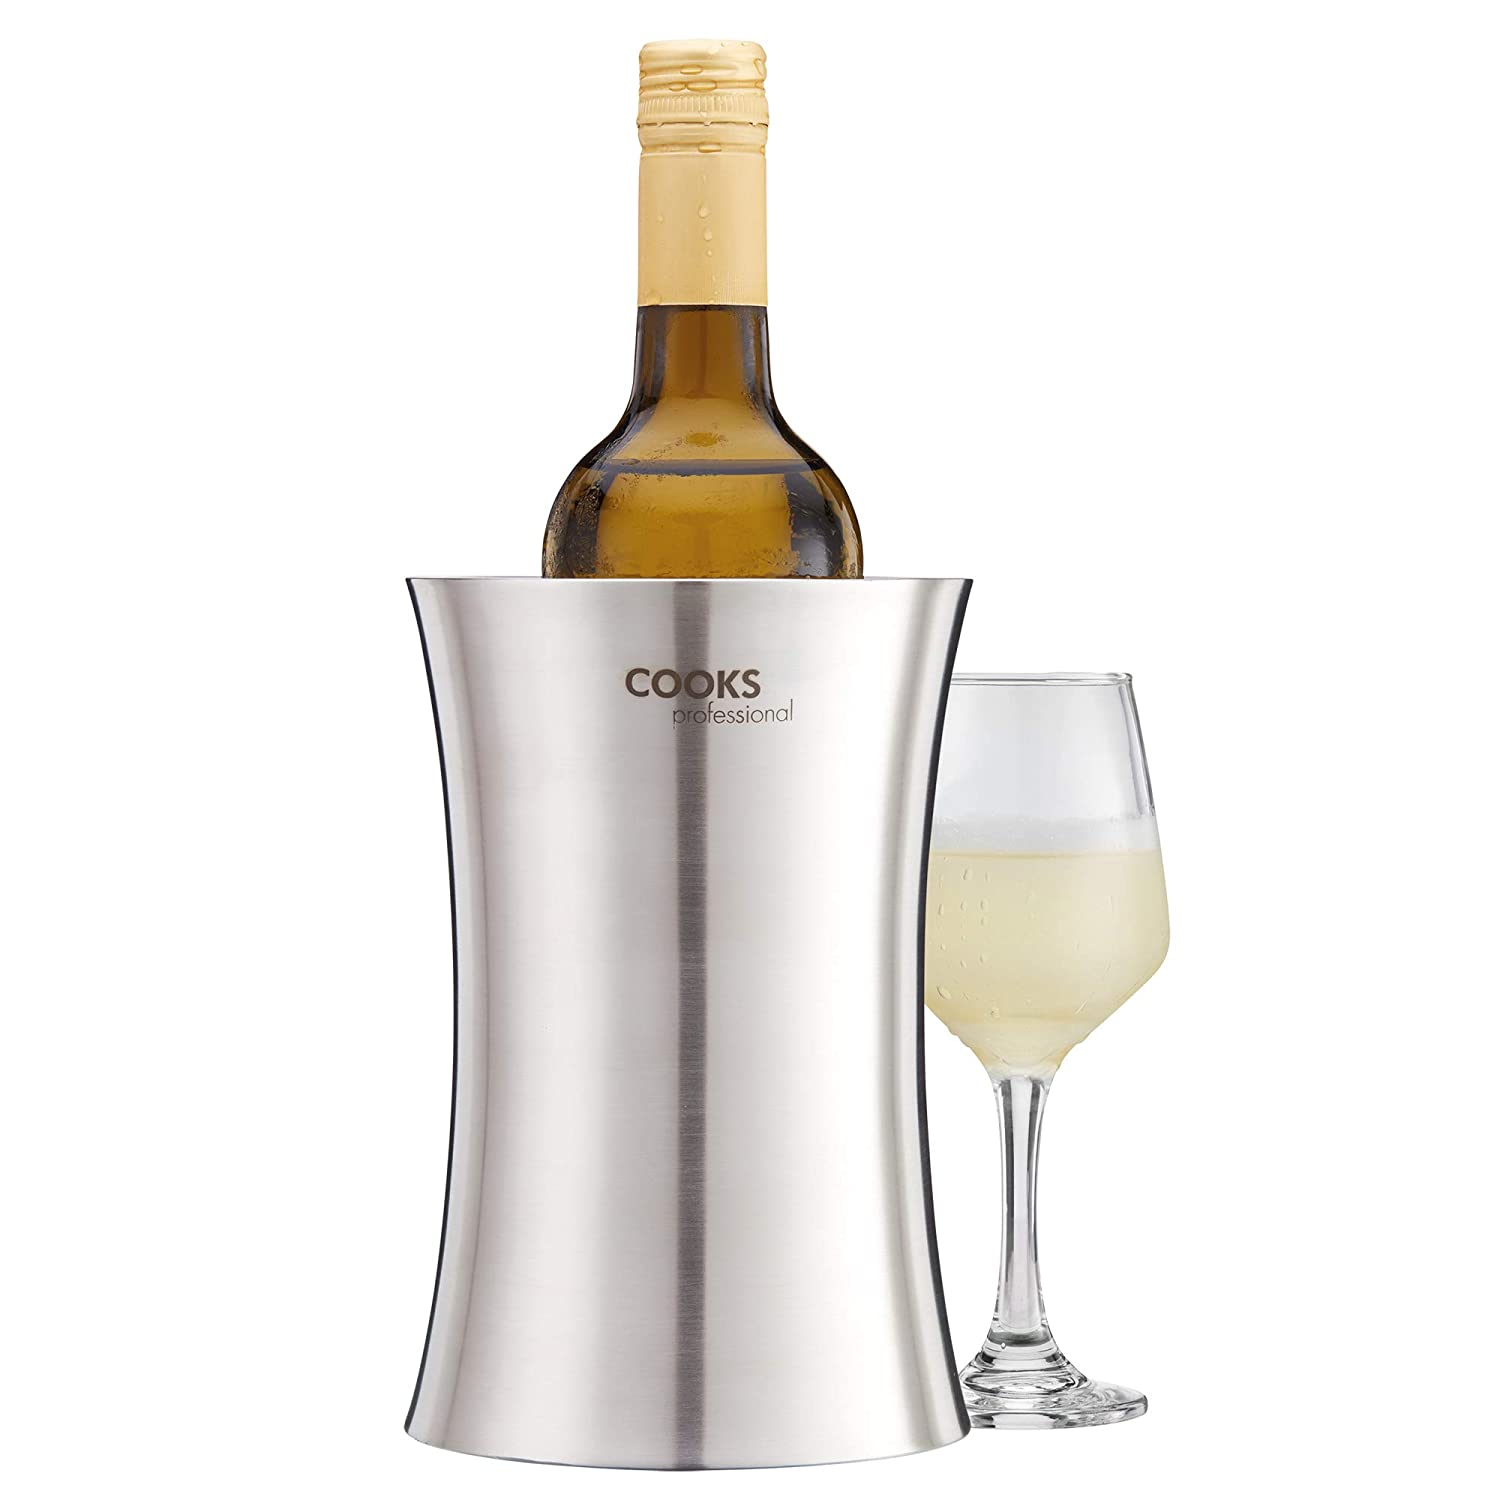 Cooks Professional Double Walled Wine Cooler Stainless Steel Drinks Chiller (Stainless Steel)